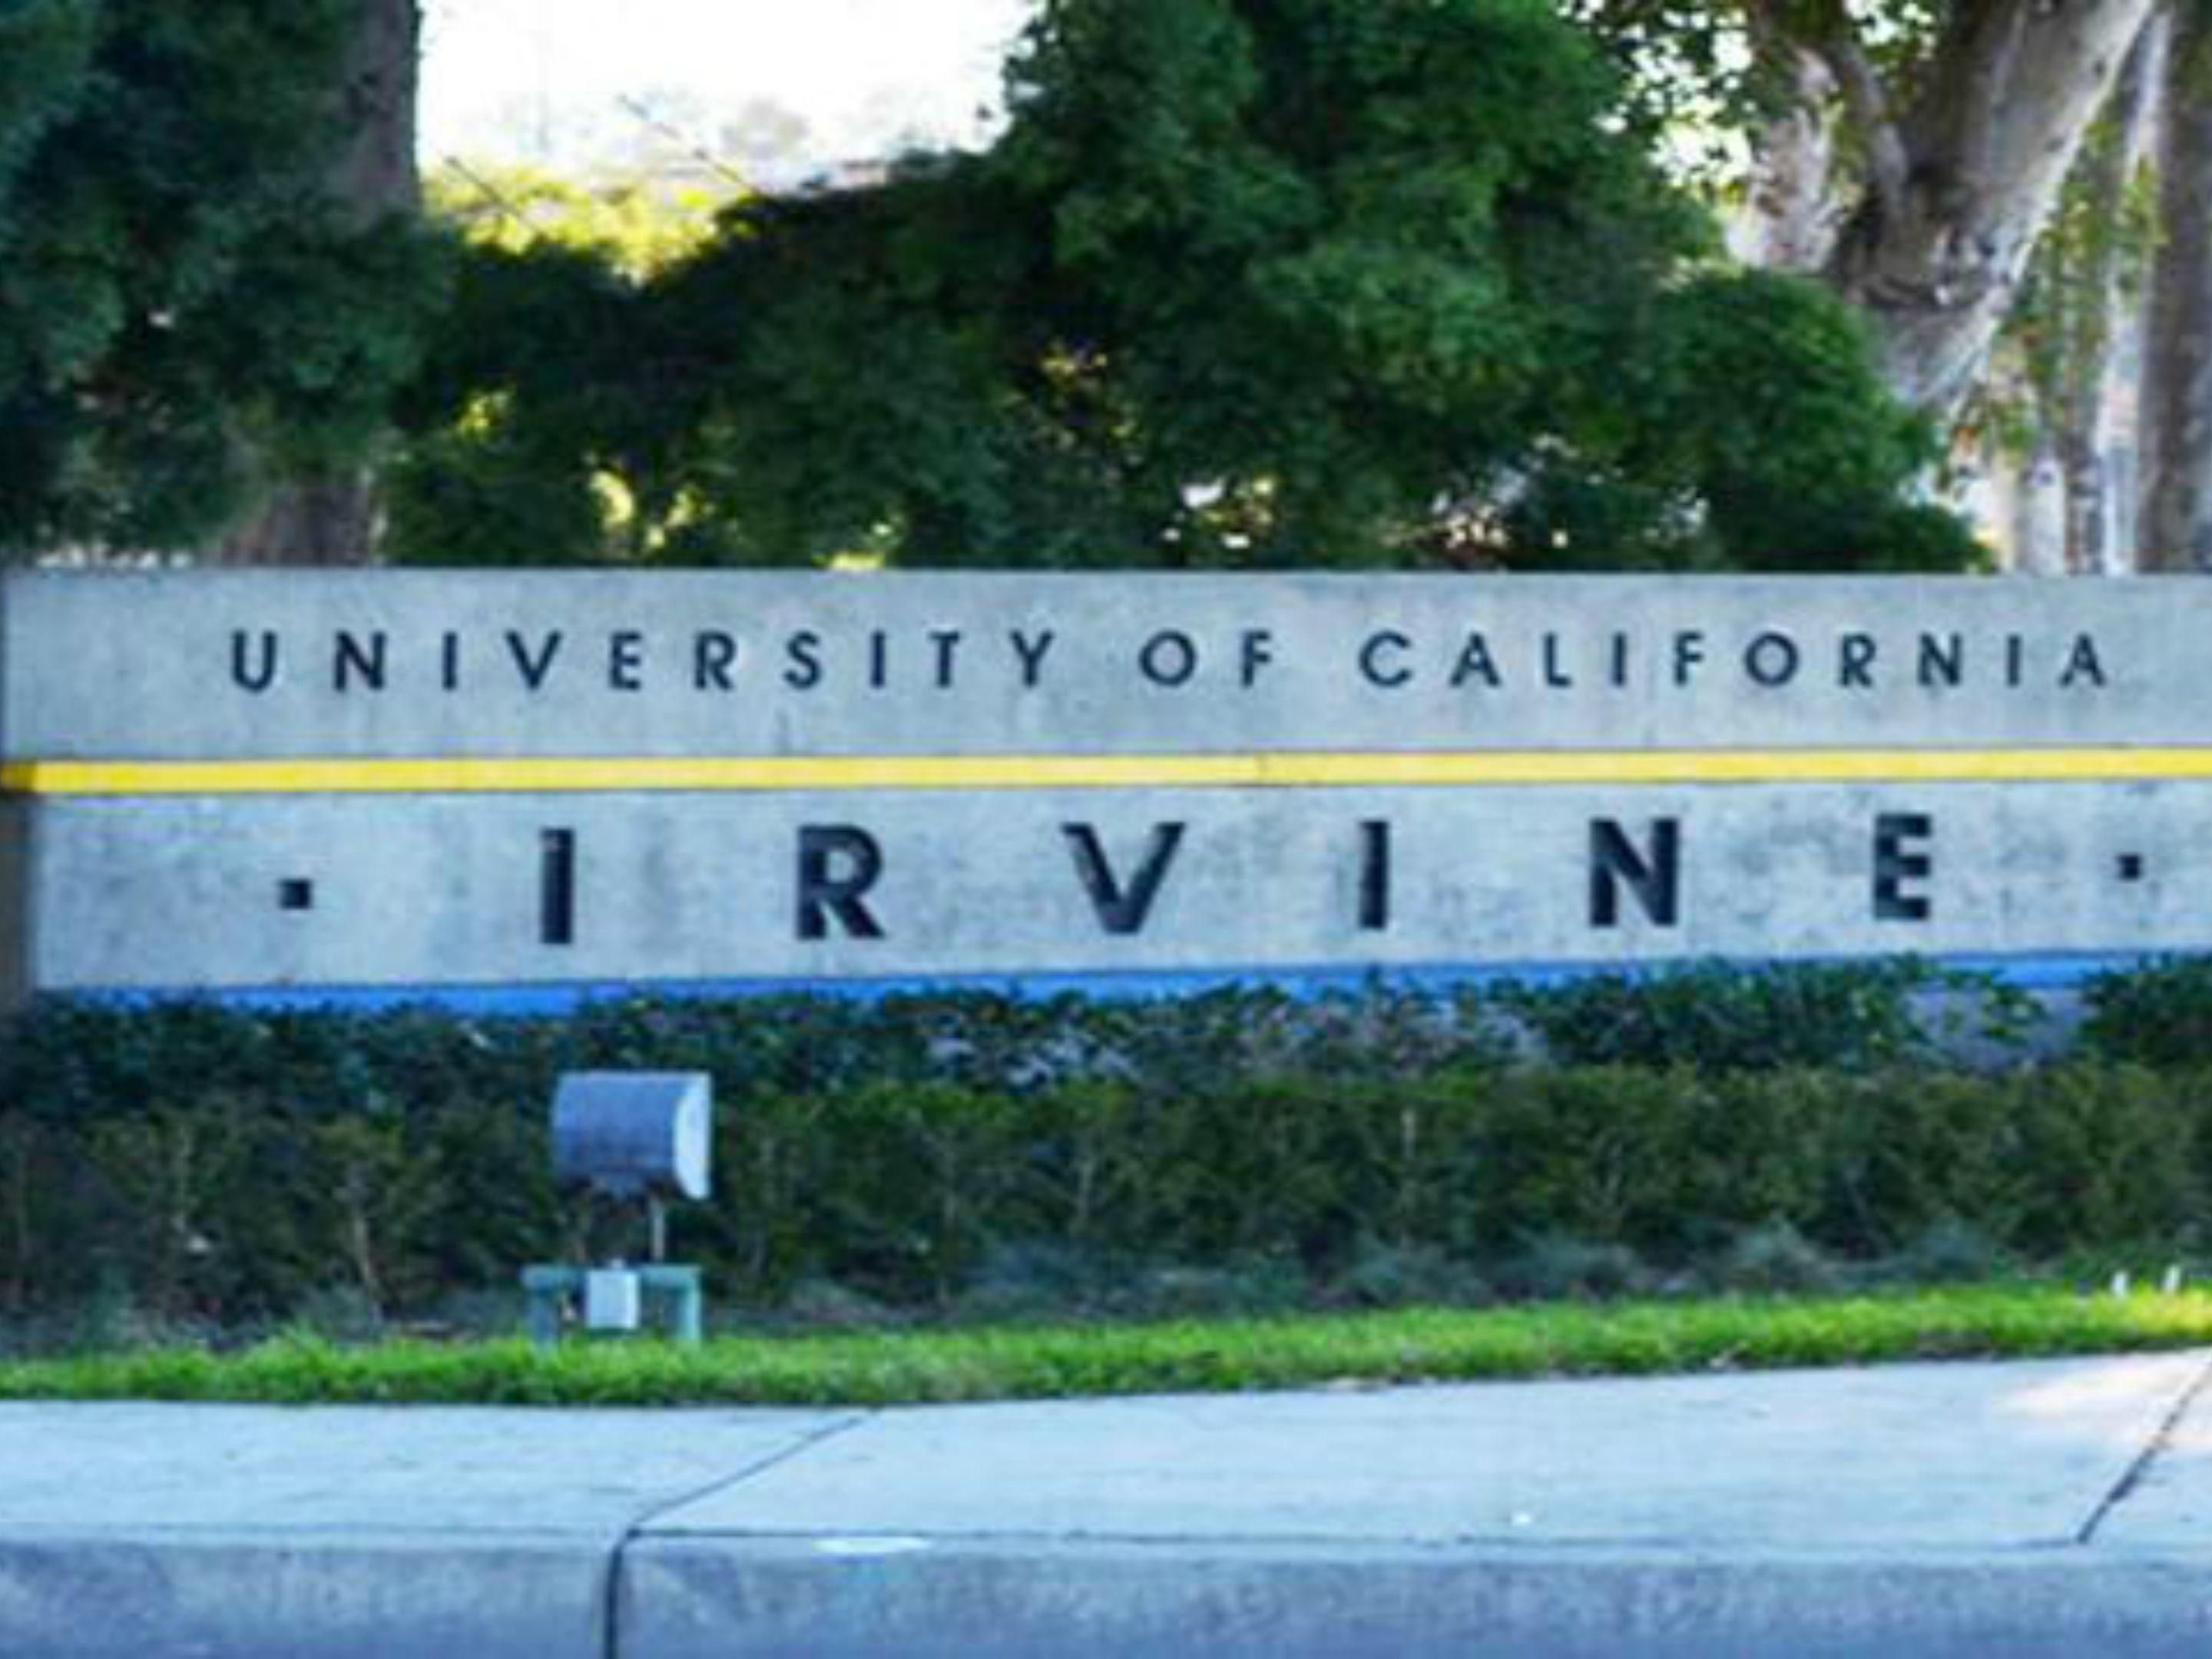 University of California, Irvine is near our Santa Ana hotel